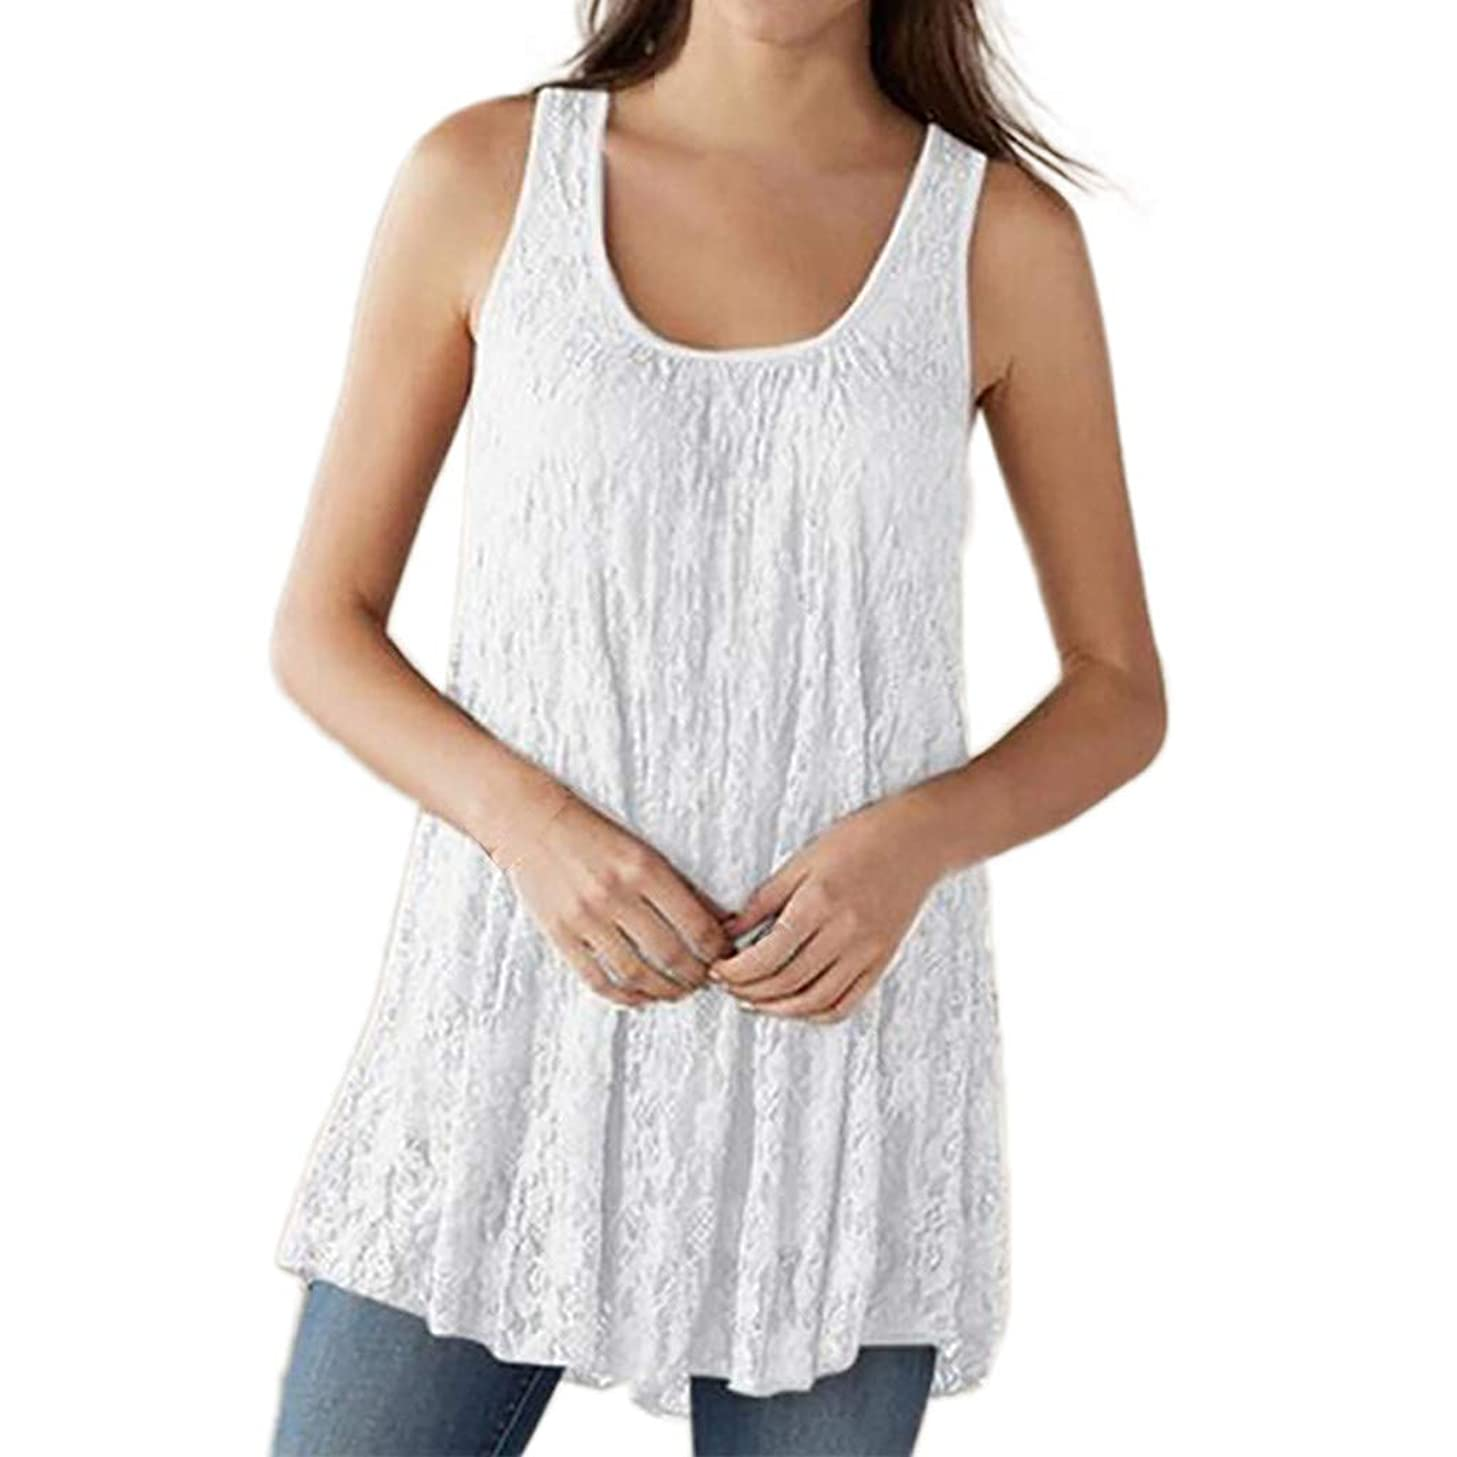 Aniywn Lace Vest, Women's Plus Size Sleeveless Lace Tank Vest Basic Solid Color O-Neck T-Shirt Tops Blouse